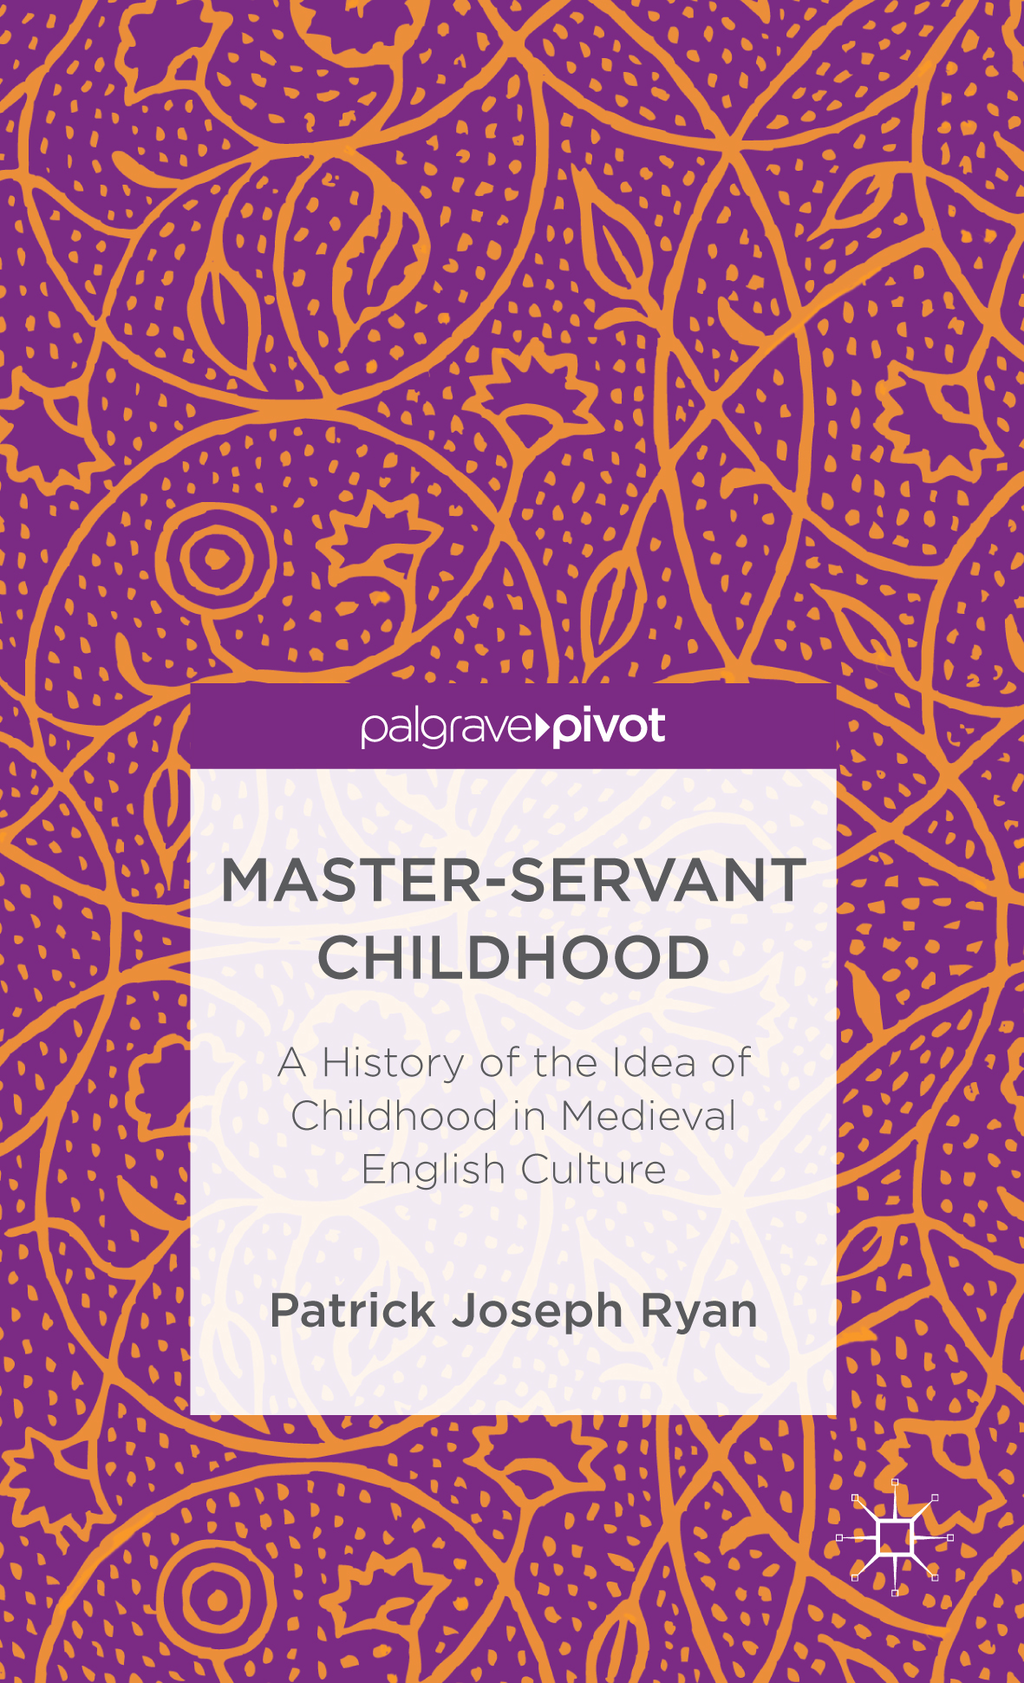 Master-Servant Childhood A History of the Idea of Childhood in Medieval English Culture